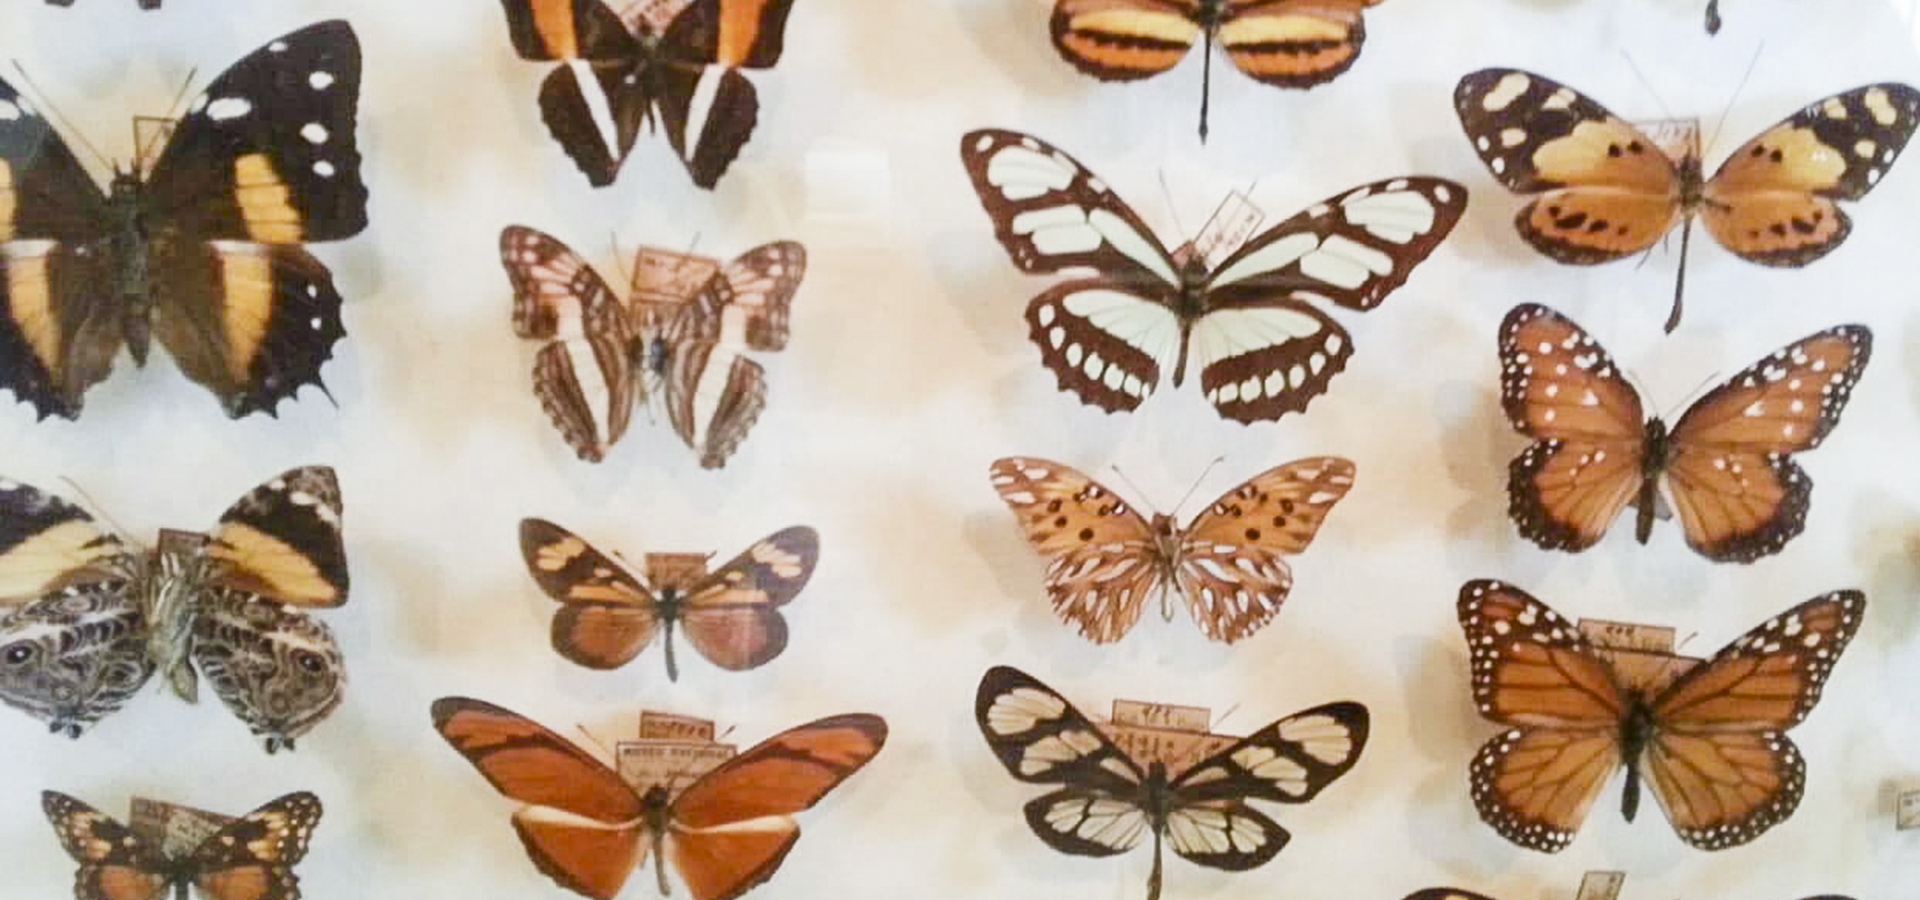 Butterfly Collection, Museu Nacional do Rio de Janeiro Photo by Maurobio. Licensed under the Creative Commons Attribution-Share Alike 4.0 International